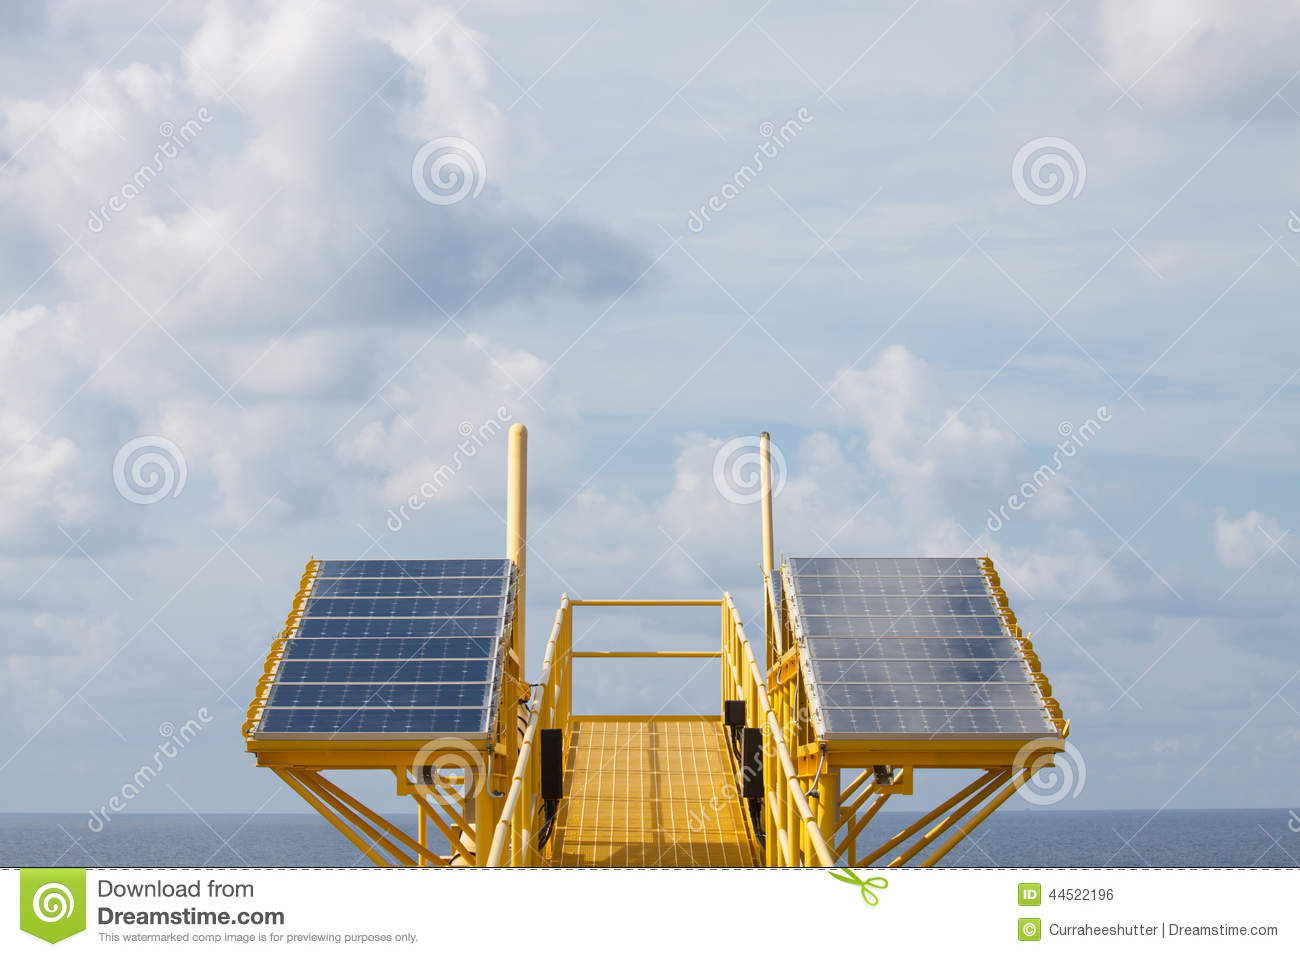 photovoltaic solar cells thesis Organic photovoltaic review  one advantage of going through this process is that your thesis becomes a permanent record of  organic solar cells: a review, g a.